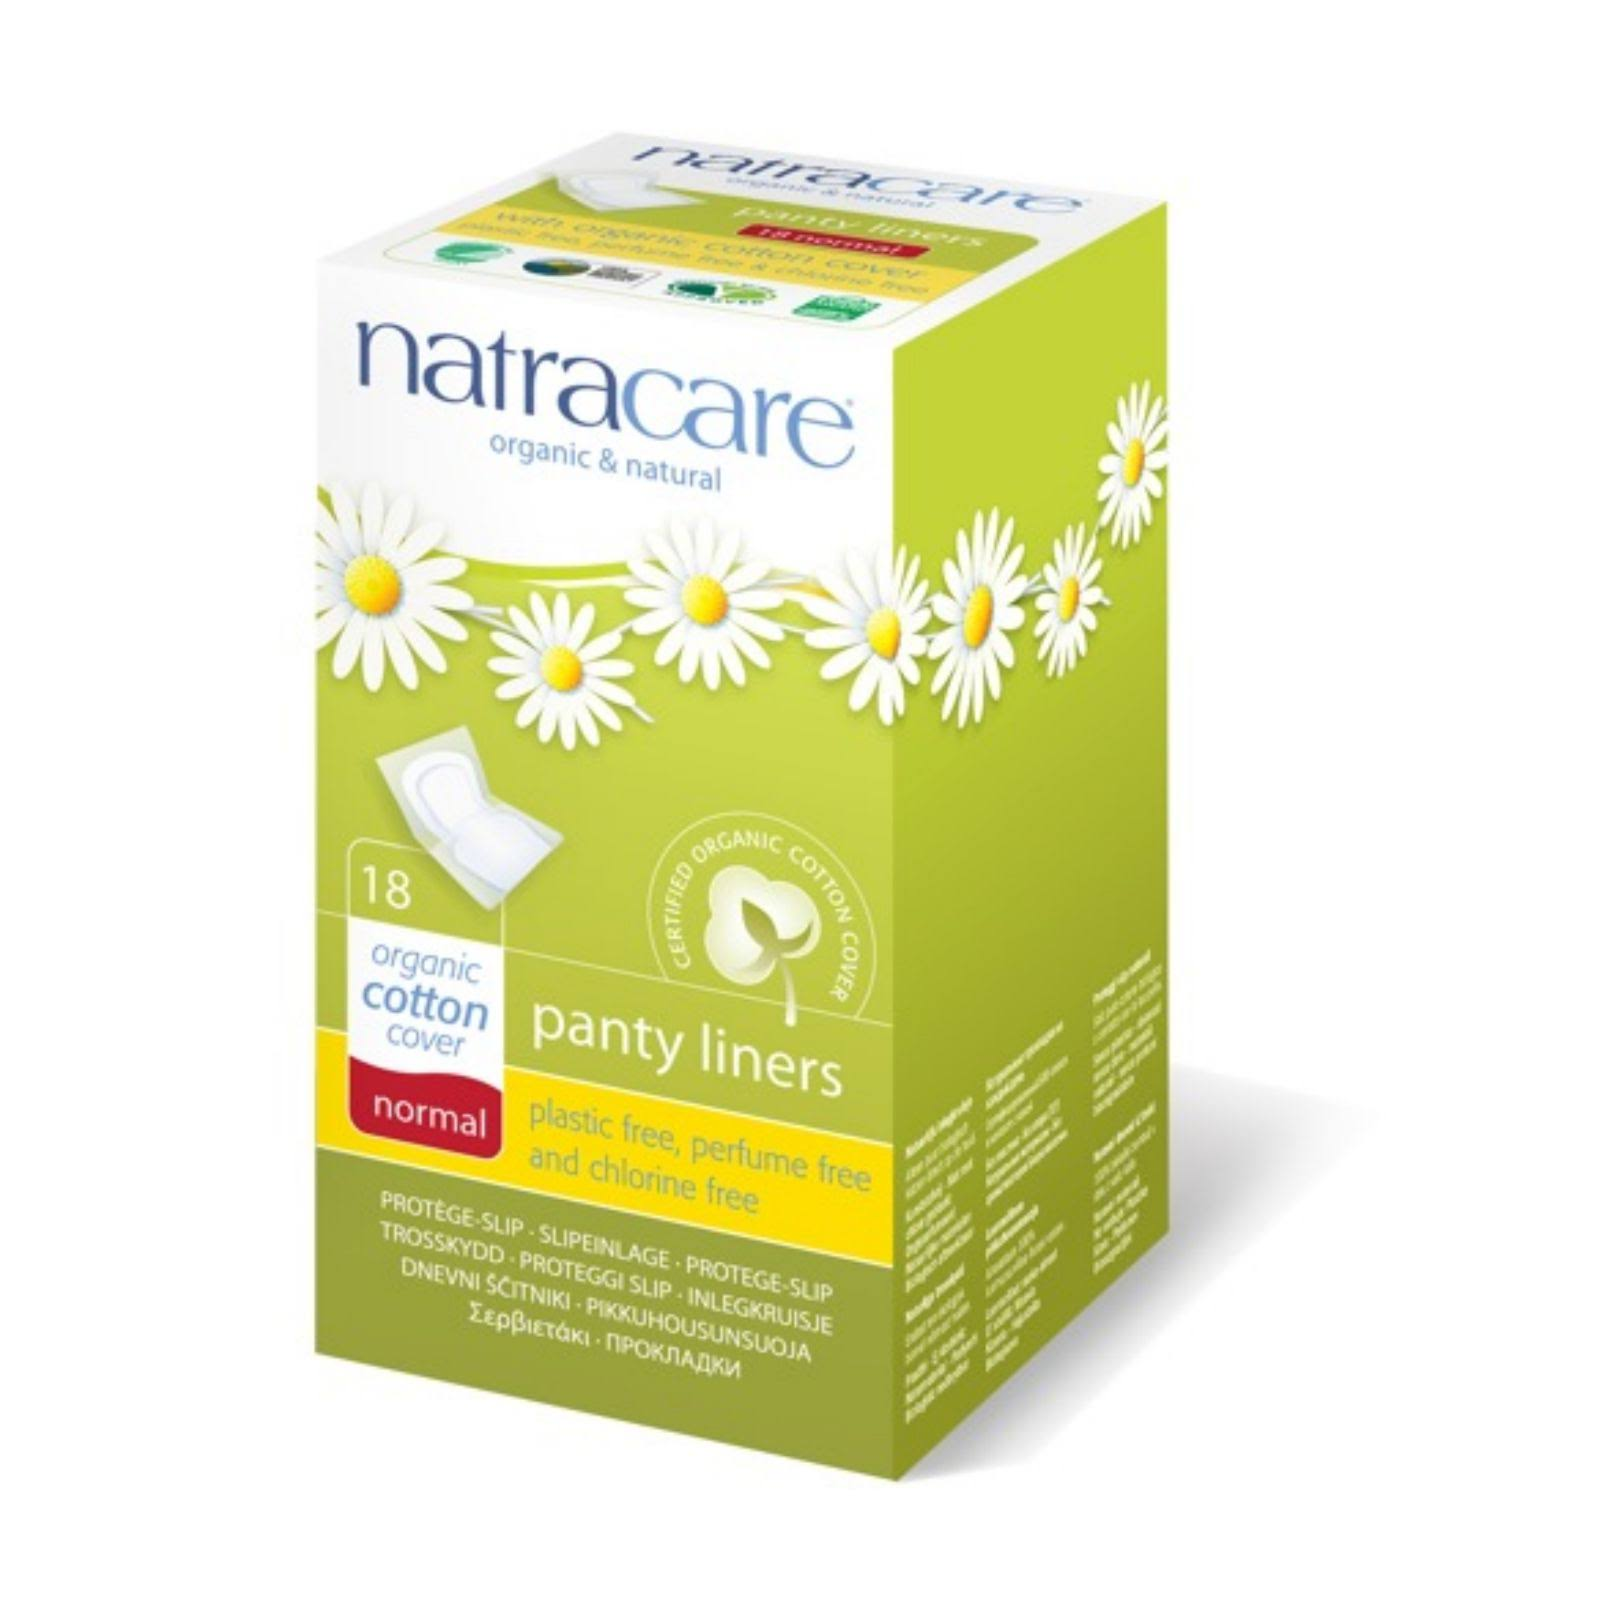 Natracare Organic Cotton Cover Panty Liners - Normal, 18ct